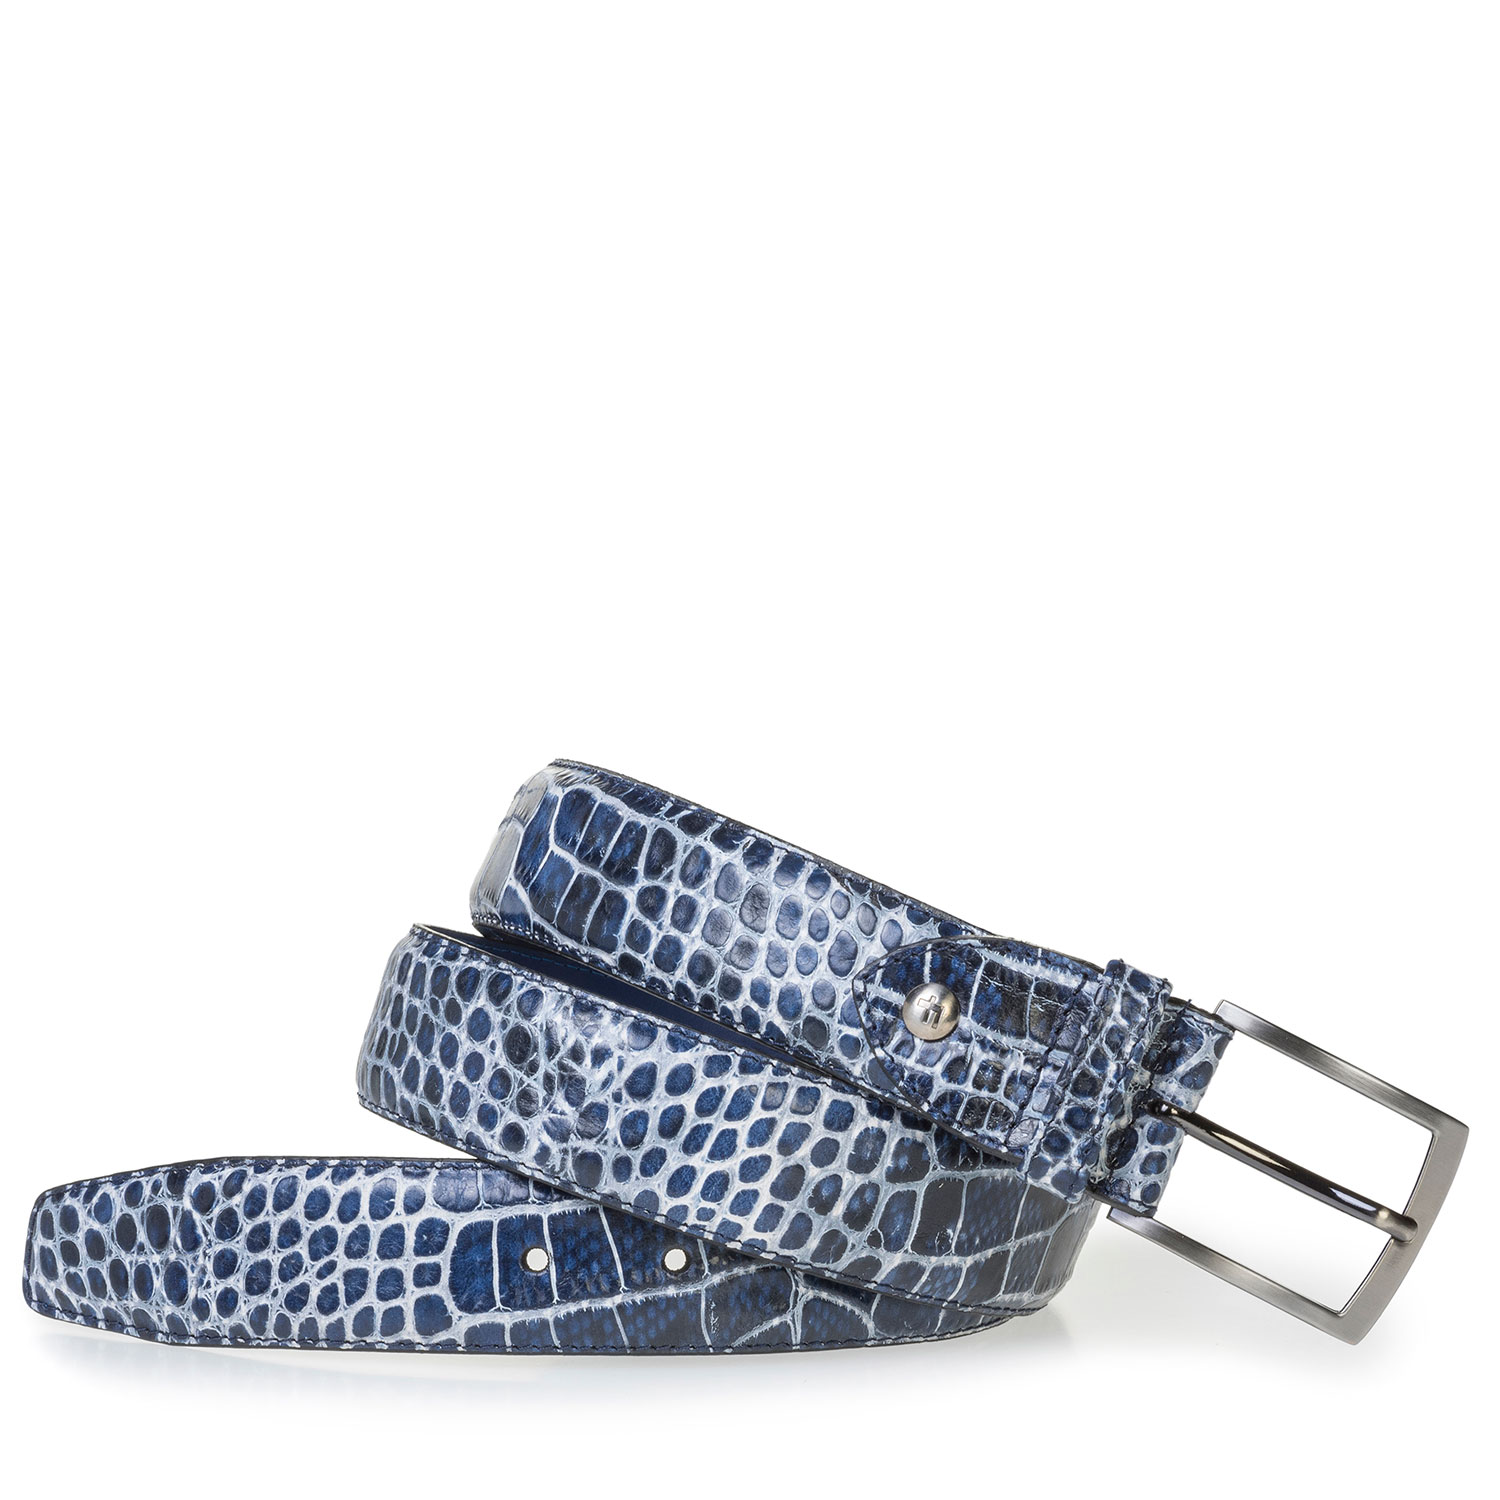 75203/04 - Blue leather belt with croco print